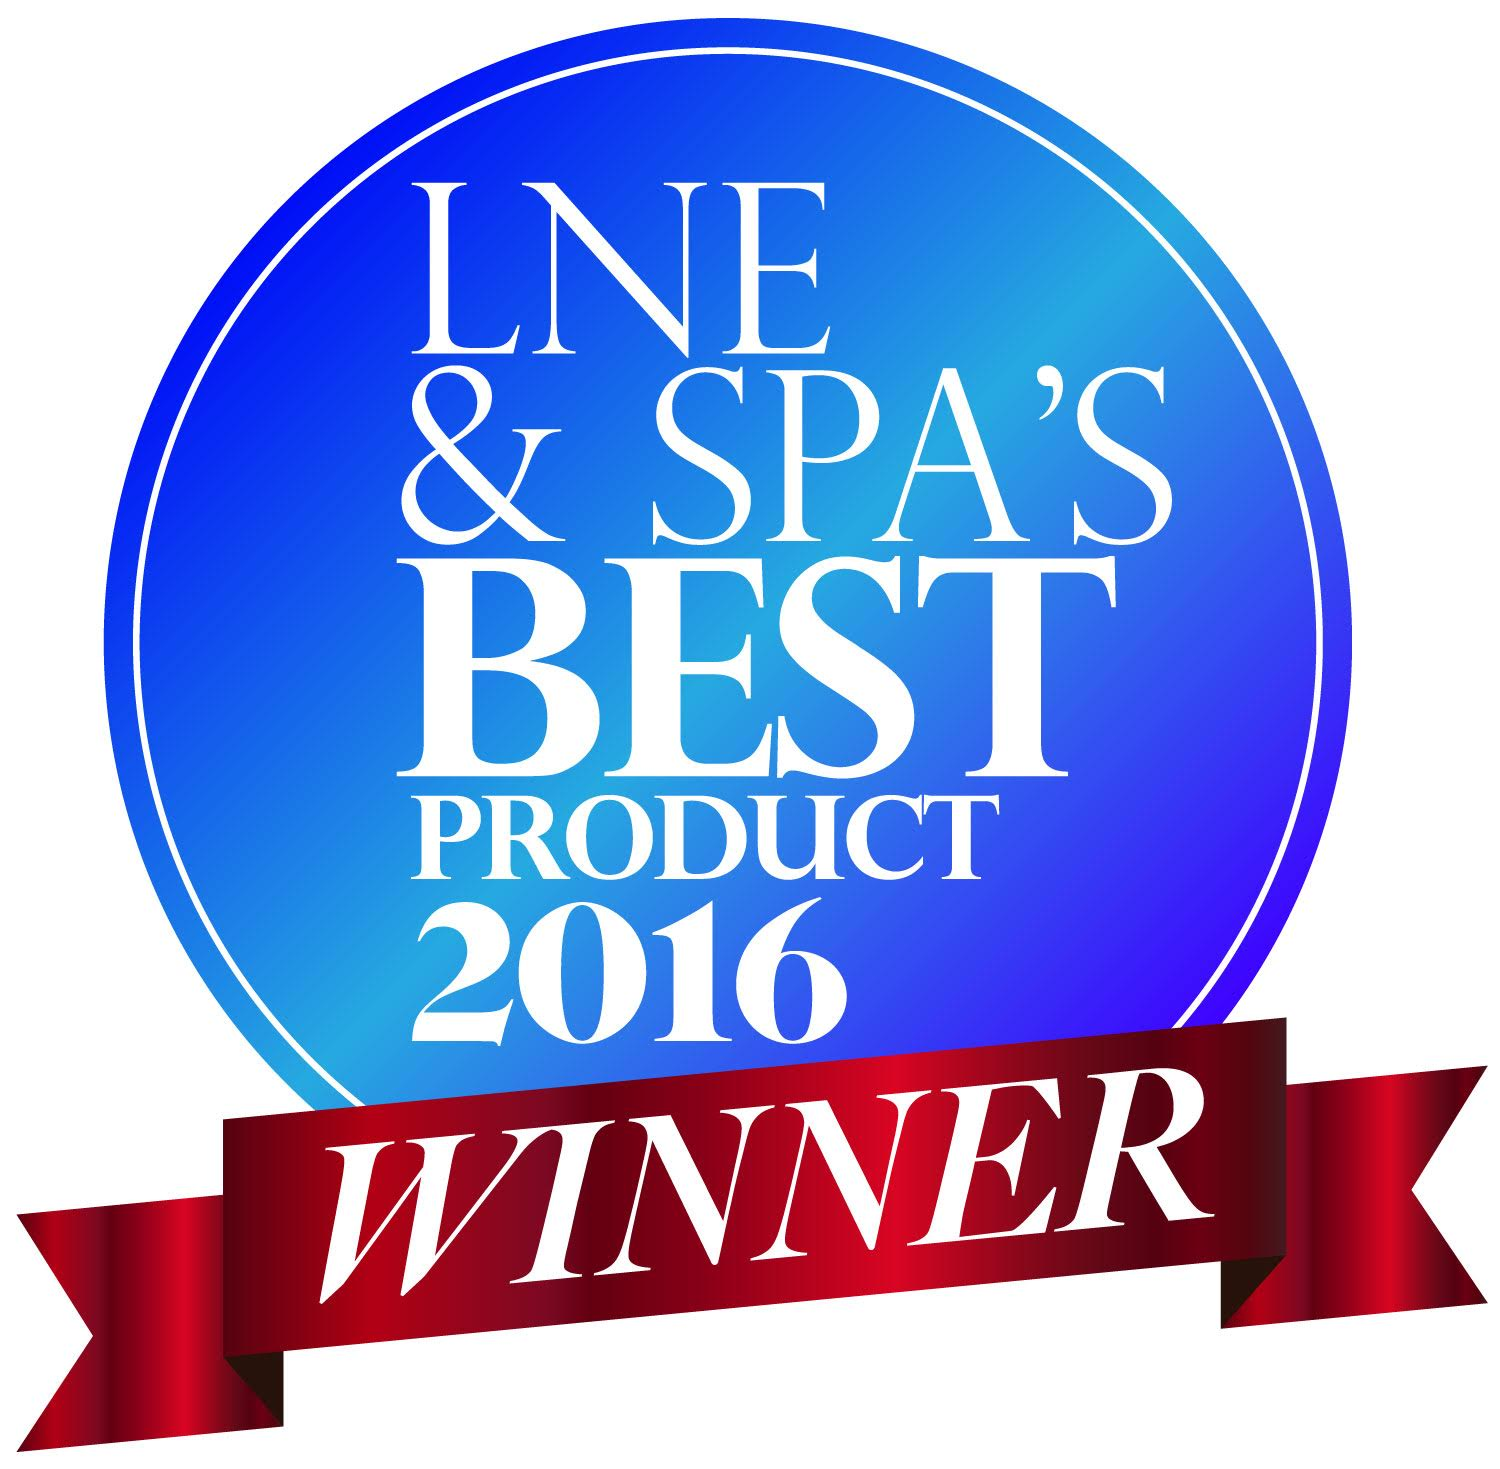 IntelliSeal Best Product Award